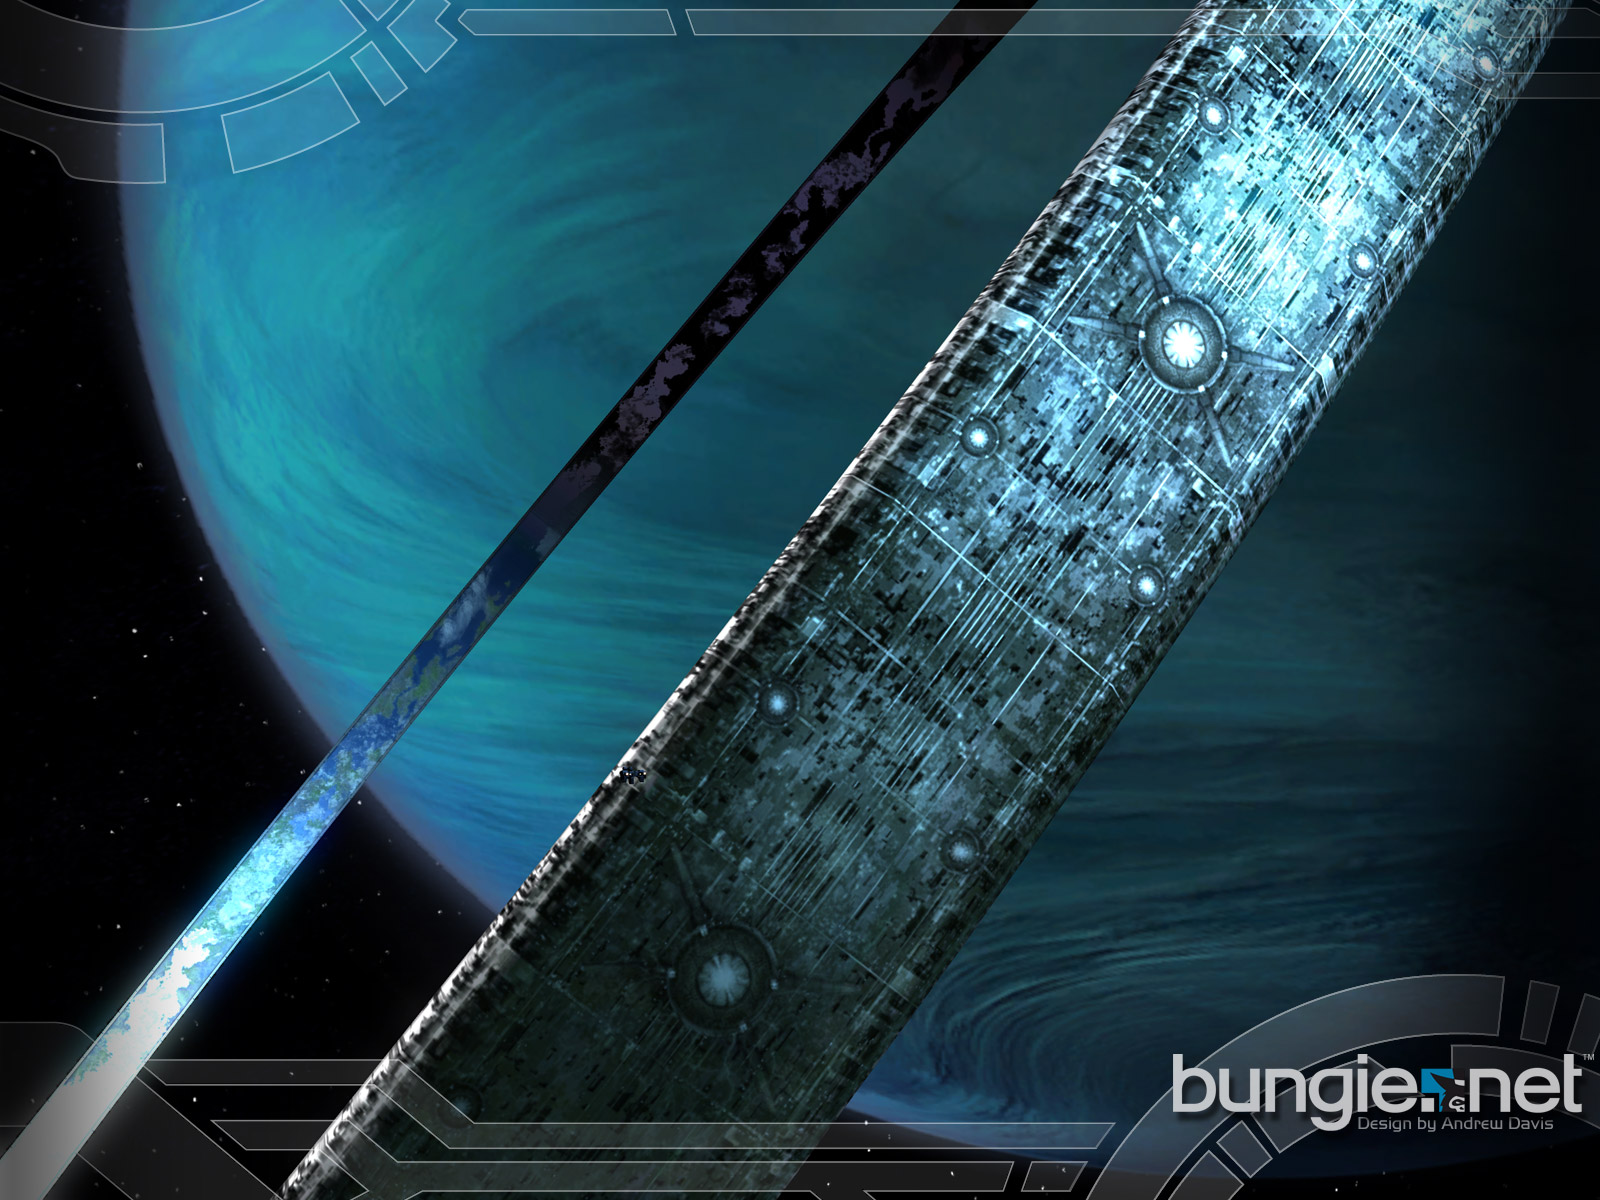 Halo-2-wallpaper-the-halo-ring.jpg